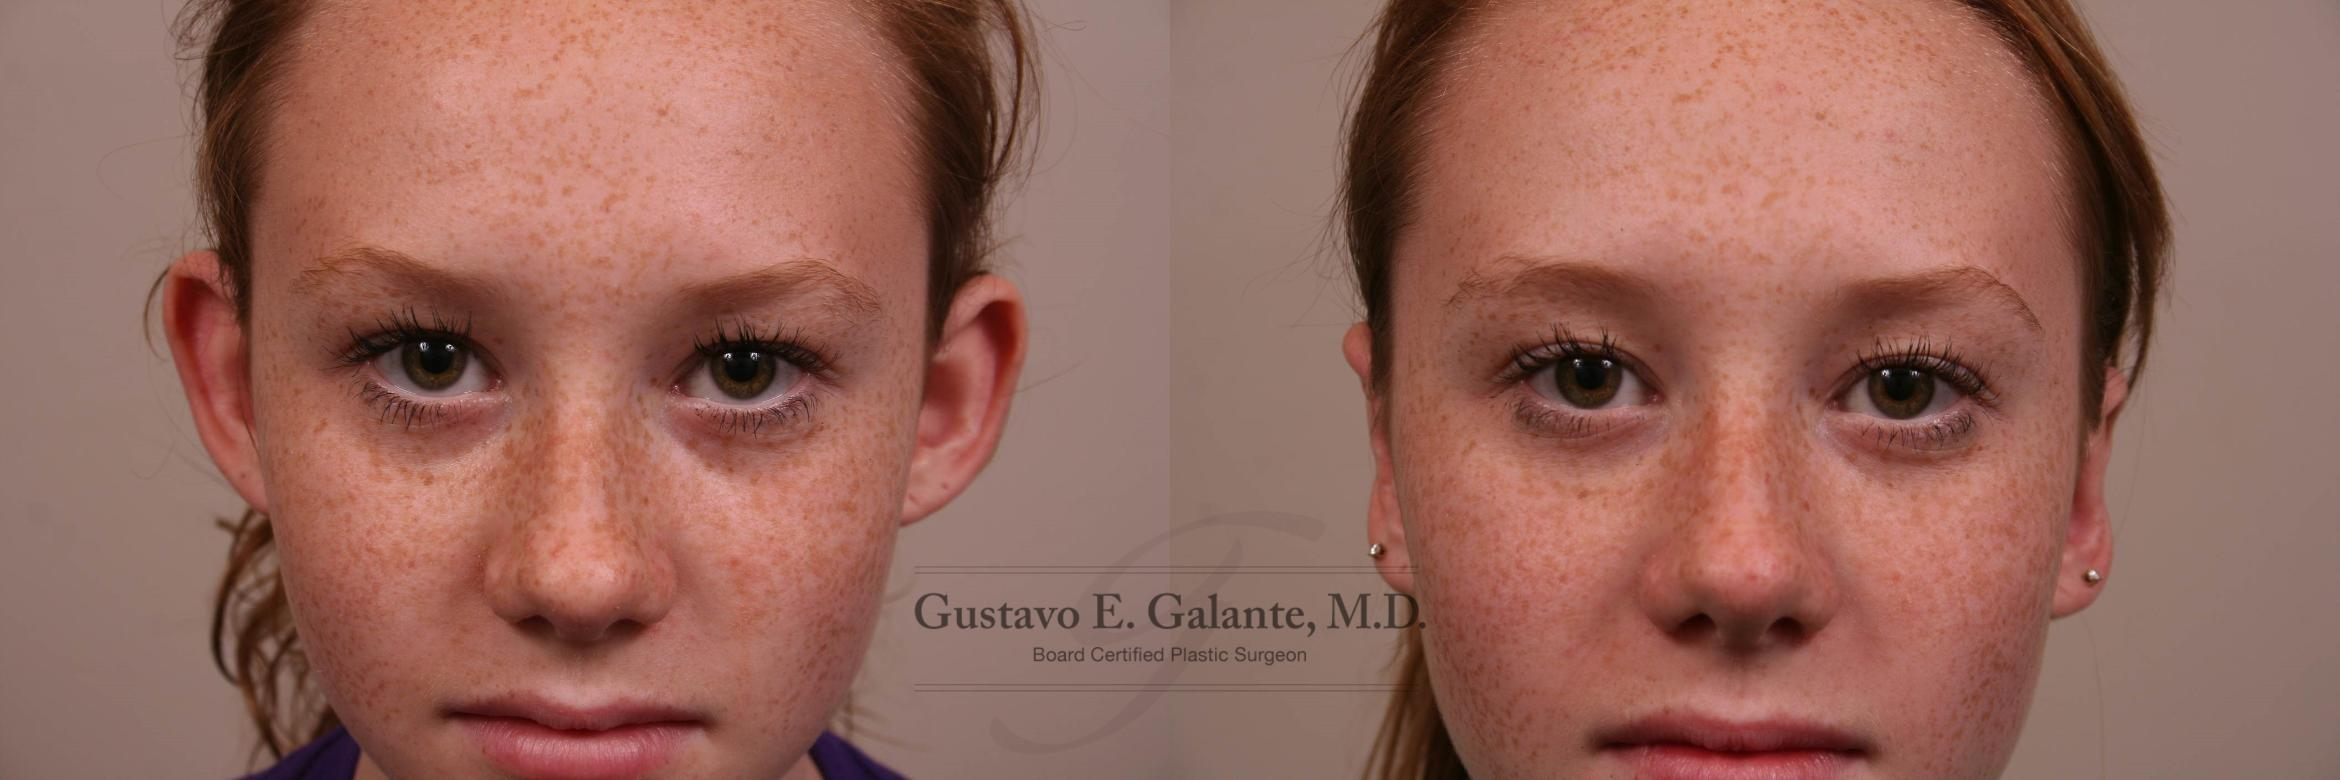 Ear Surgery (Otoplasty) Case 157 Before & After View #1 | Valparaiso & Schererville, IN | Gustavo E. Galante, MD